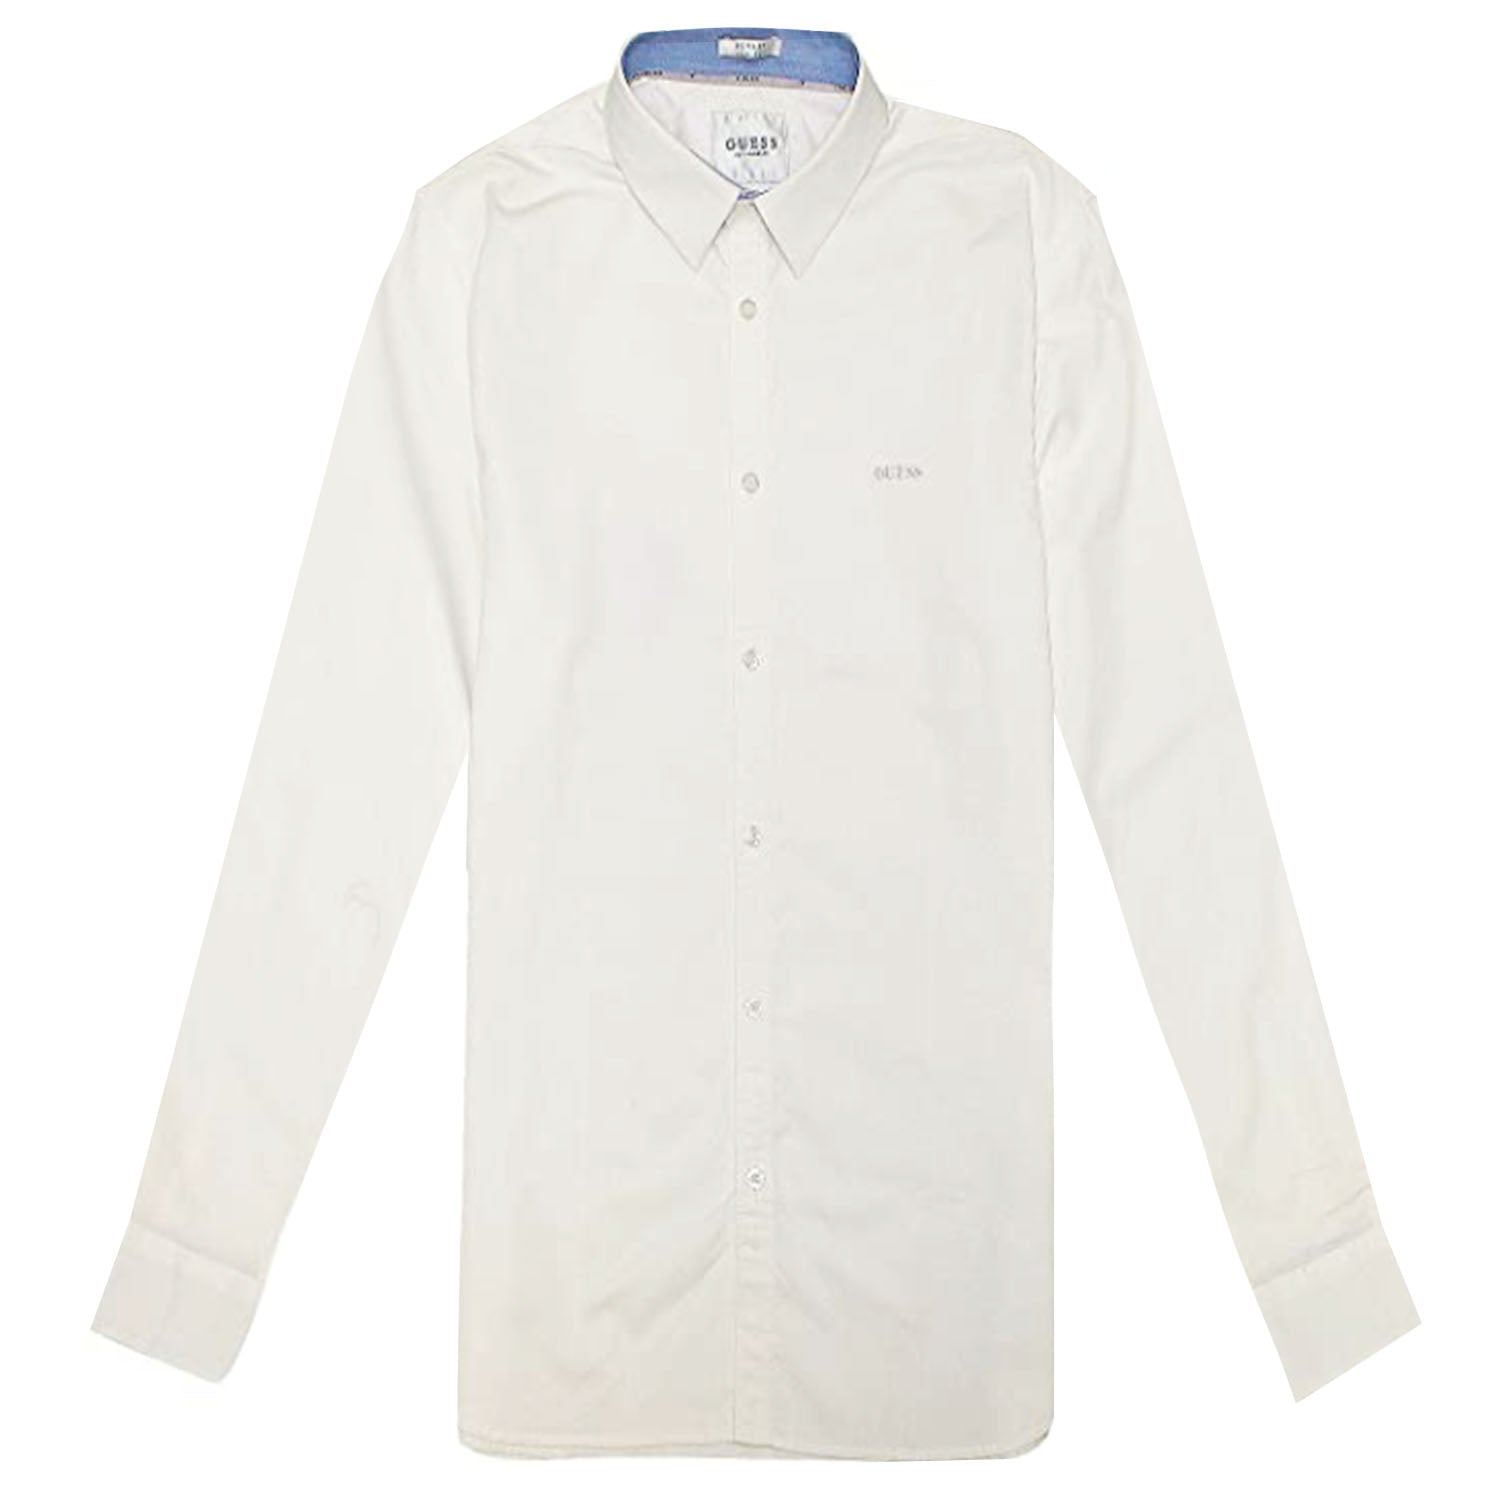 Guess Fine Tailored Super Slim Fit Shirt